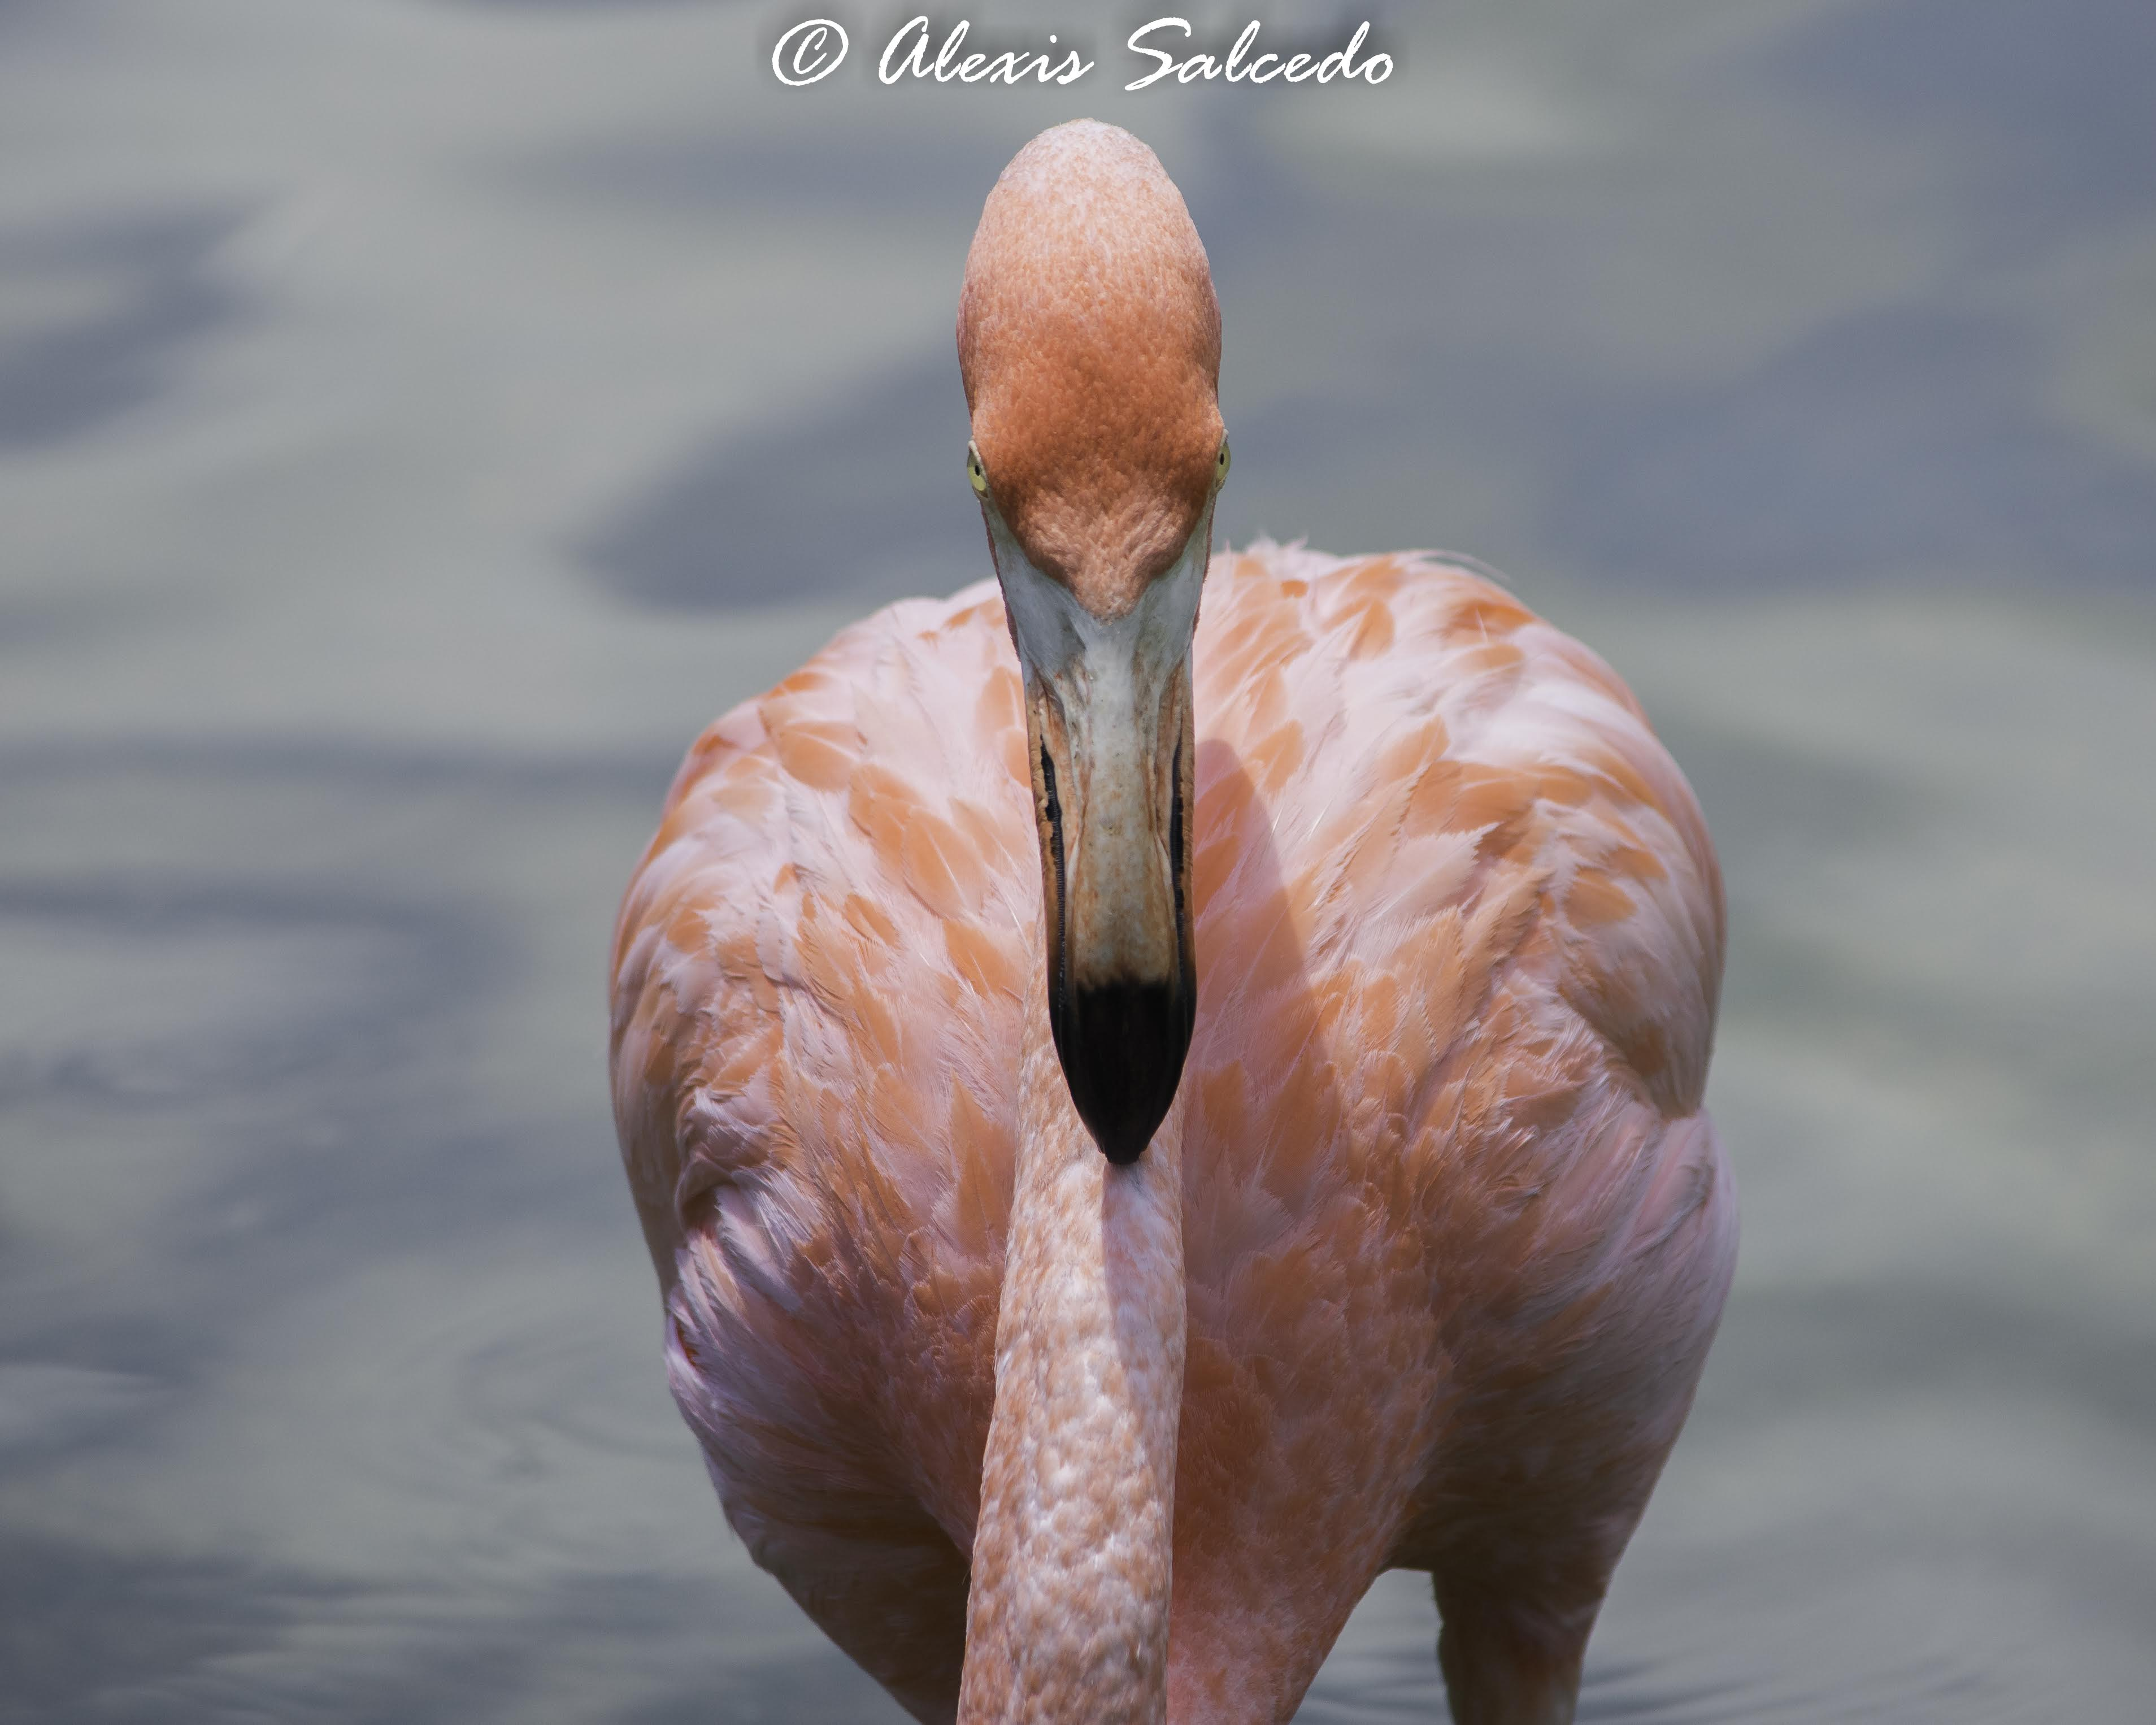 Stare contest with an American Flamingo (Phoenicopterus ruber)